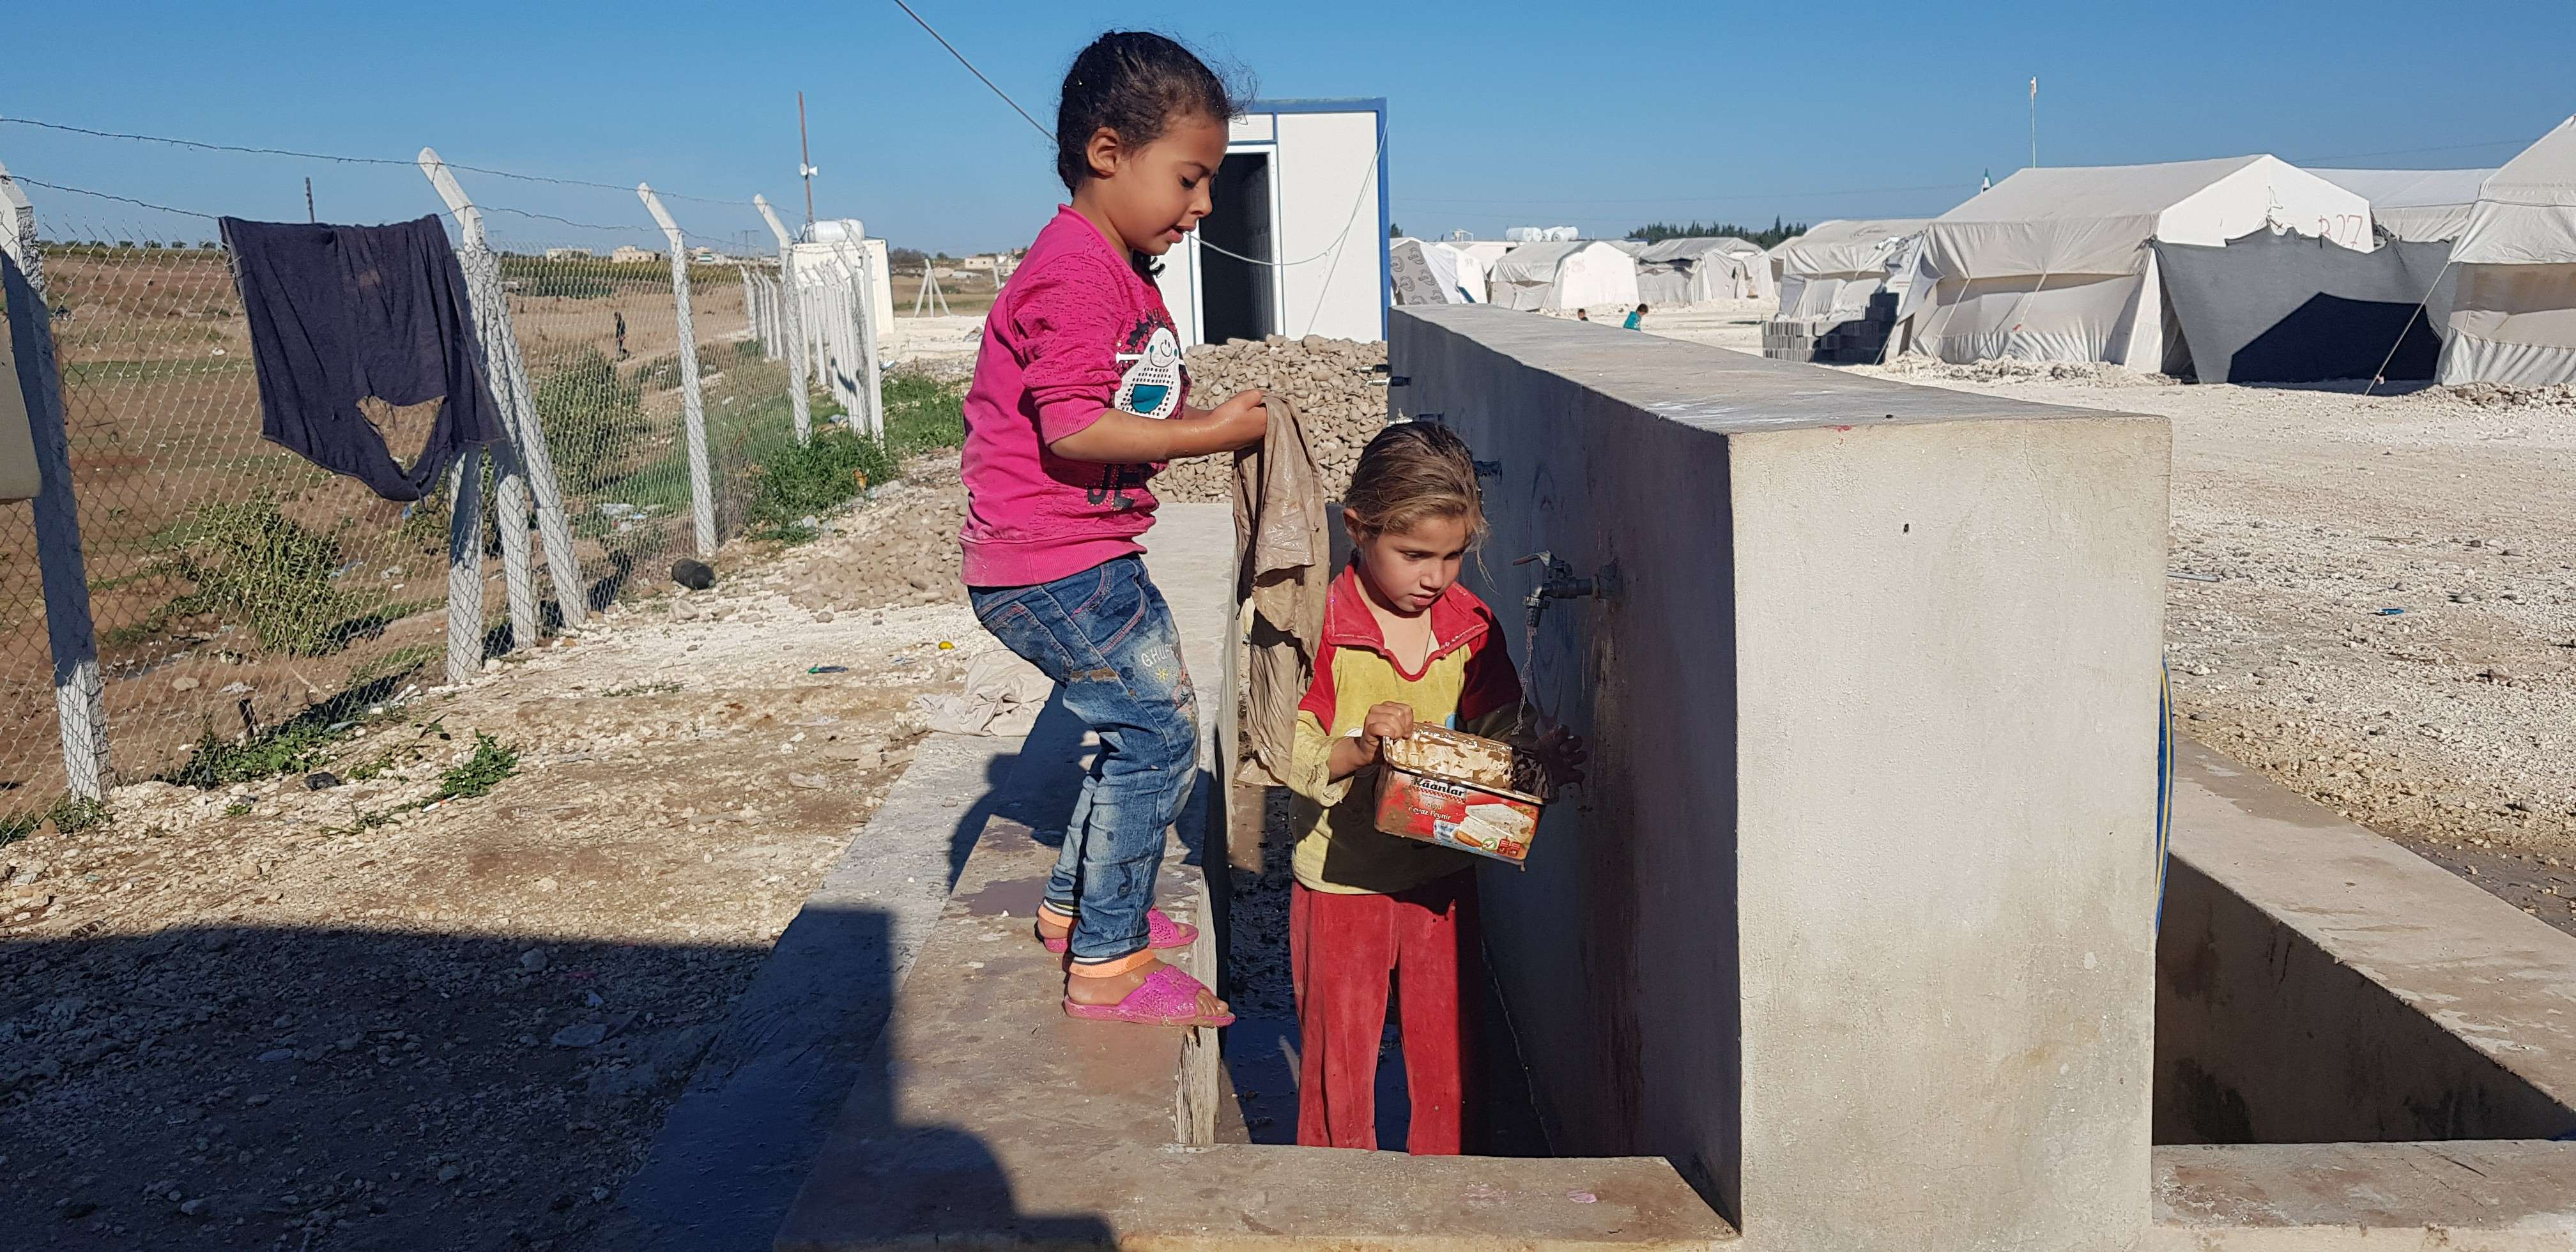 In letters addressing States and UN agencies, Euro-Med Monitor calls for providing shelter to Syrian children in camps amidst expected cold wave